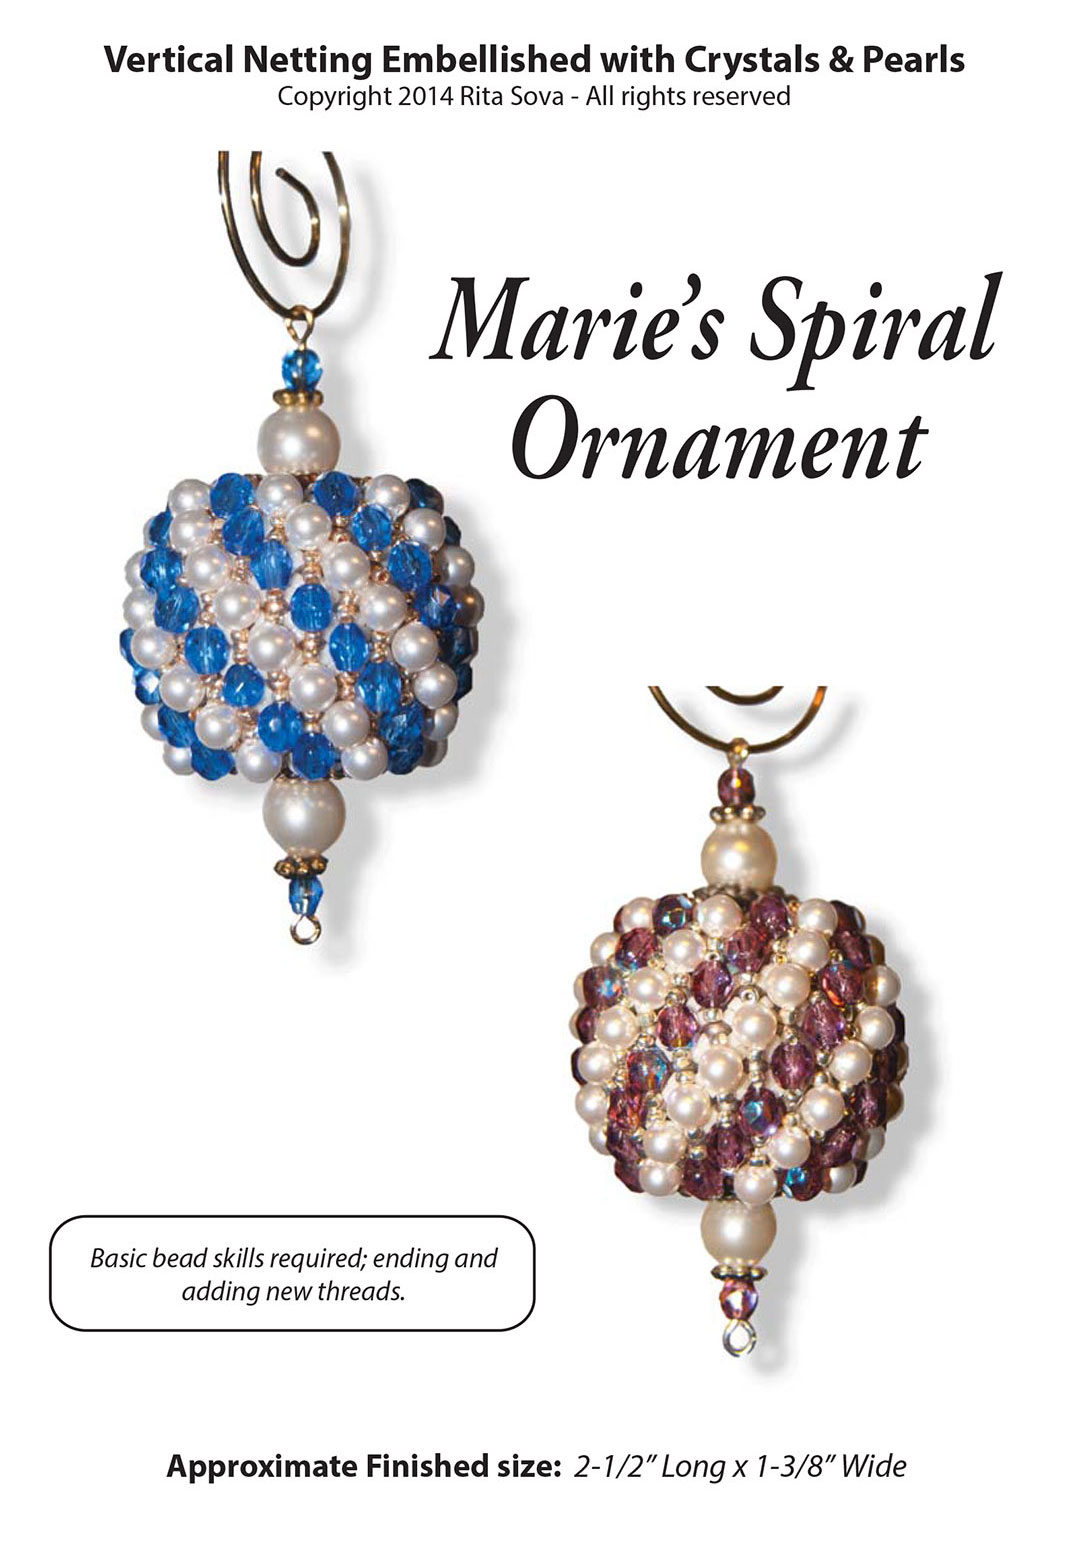 Marie's Spiral Ornament